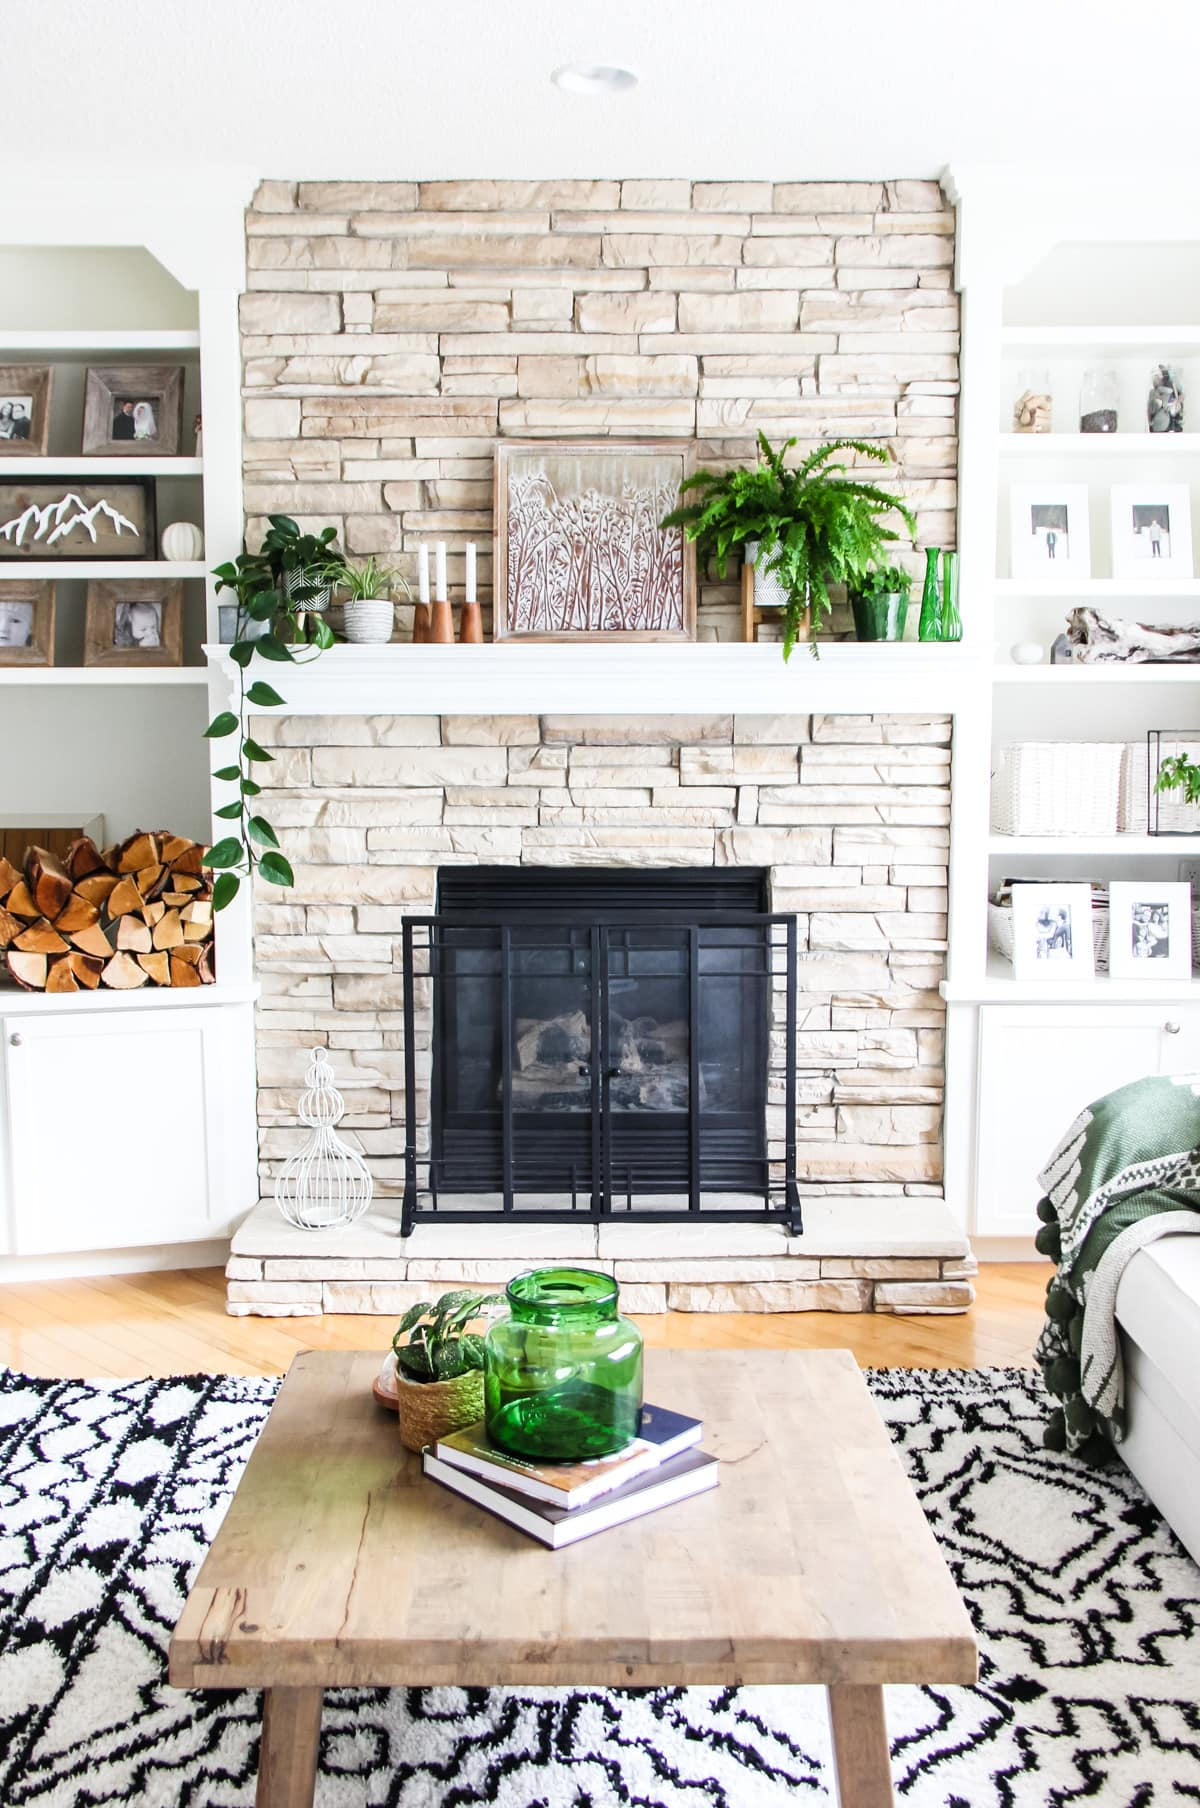 a front view of a light stone fireplace decorated with plants, candles and art. on either side are white built in shelves filled with white framed pictures, baskets and pops of green. in the forefront is a wooden coffee table with a green vase and plant